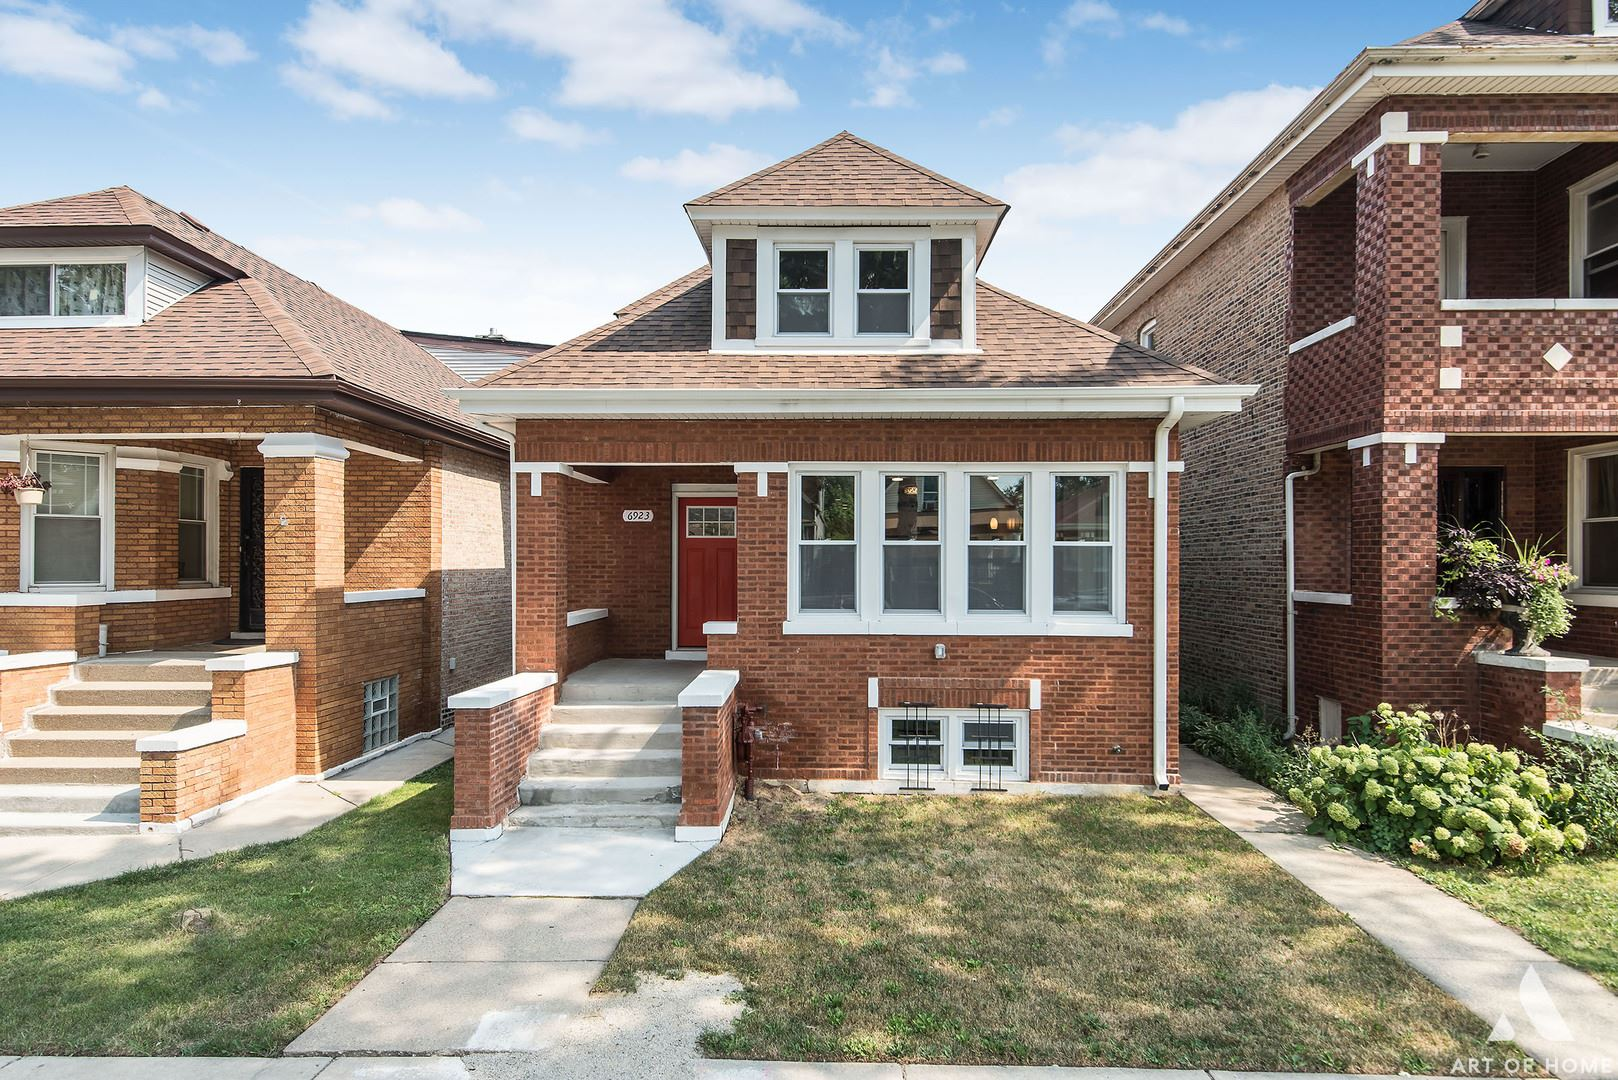 6923 S Rockwell Street, Chicago, IL 60629 - #: 11221500